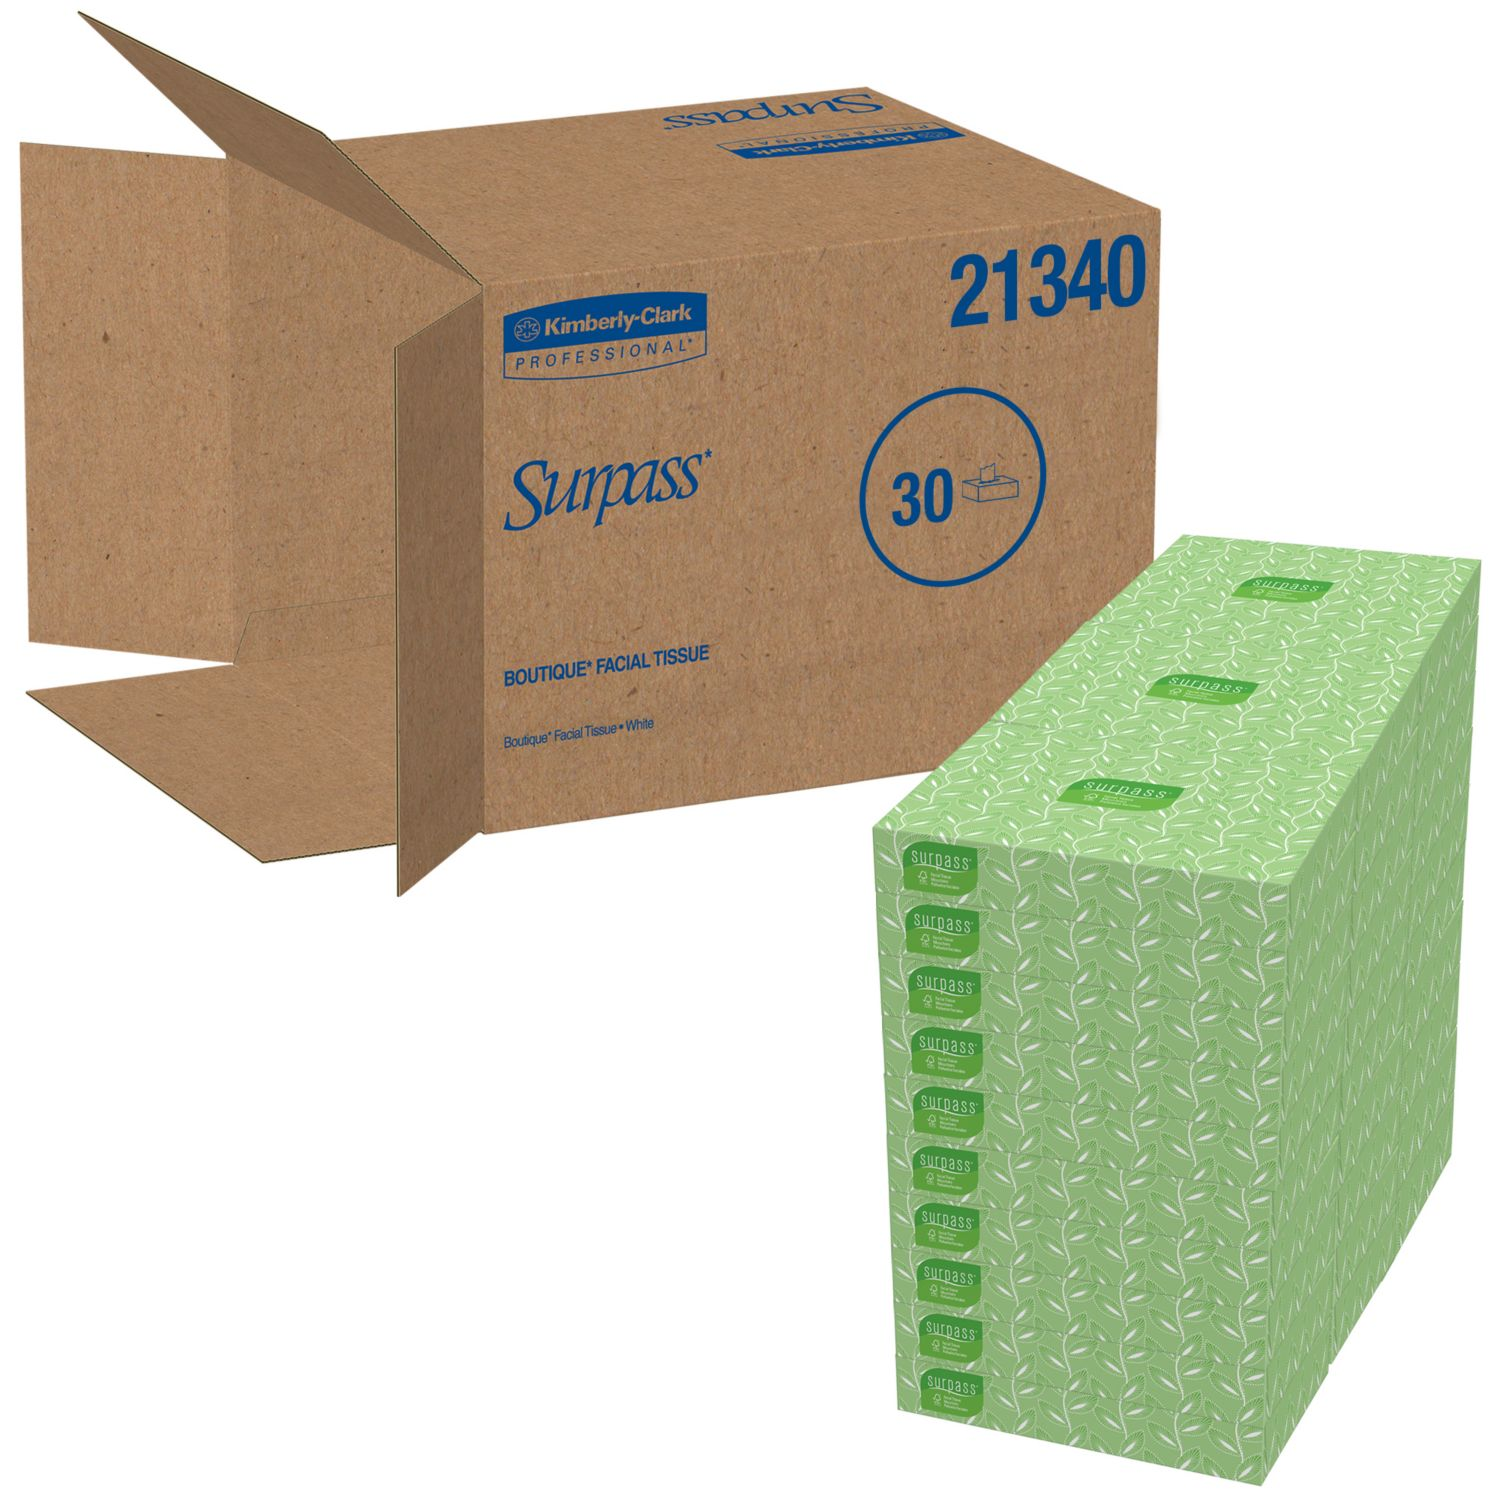 Surpass Facial Tissue Flat Box 2Ply White Unscented